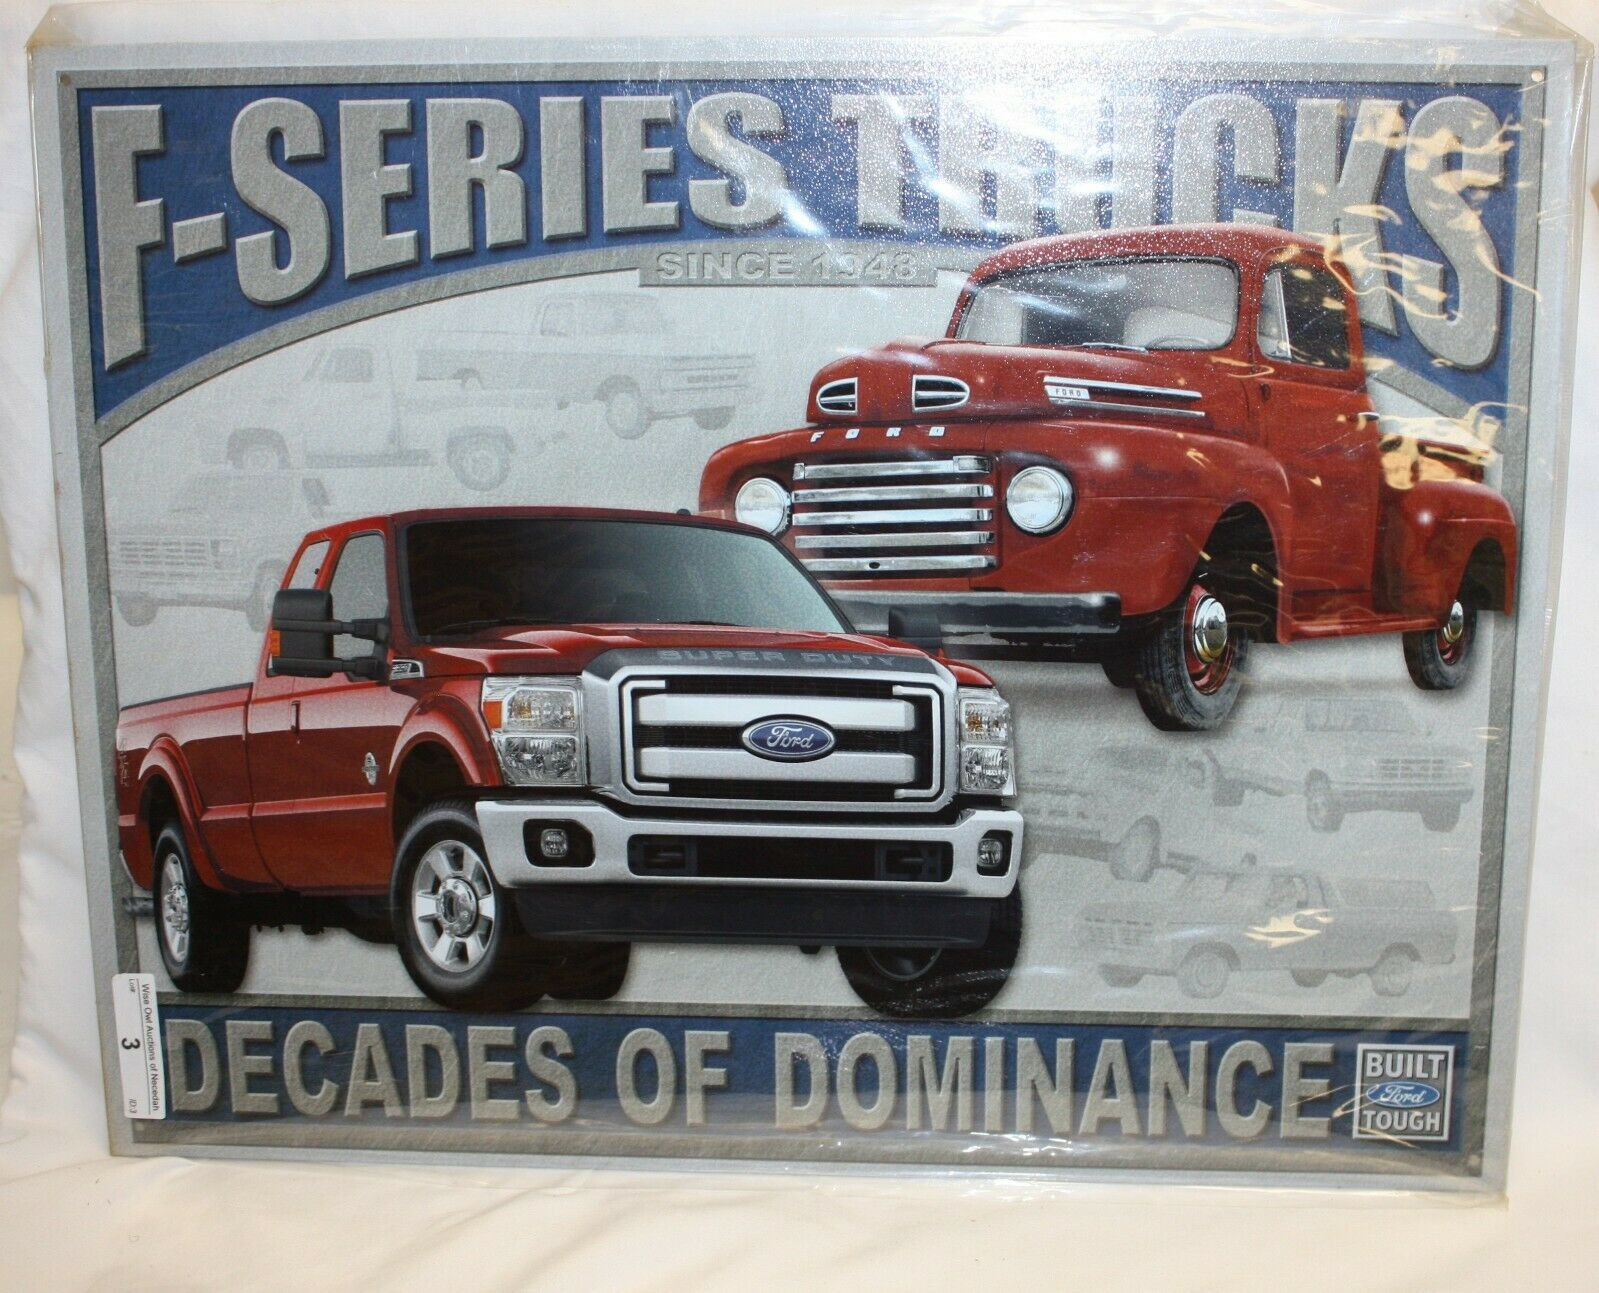 "Primary image for Ford F-Series Trucks Metal Tin Sign Decades of Dominance 16"" x 12.5"" Brand NEW"